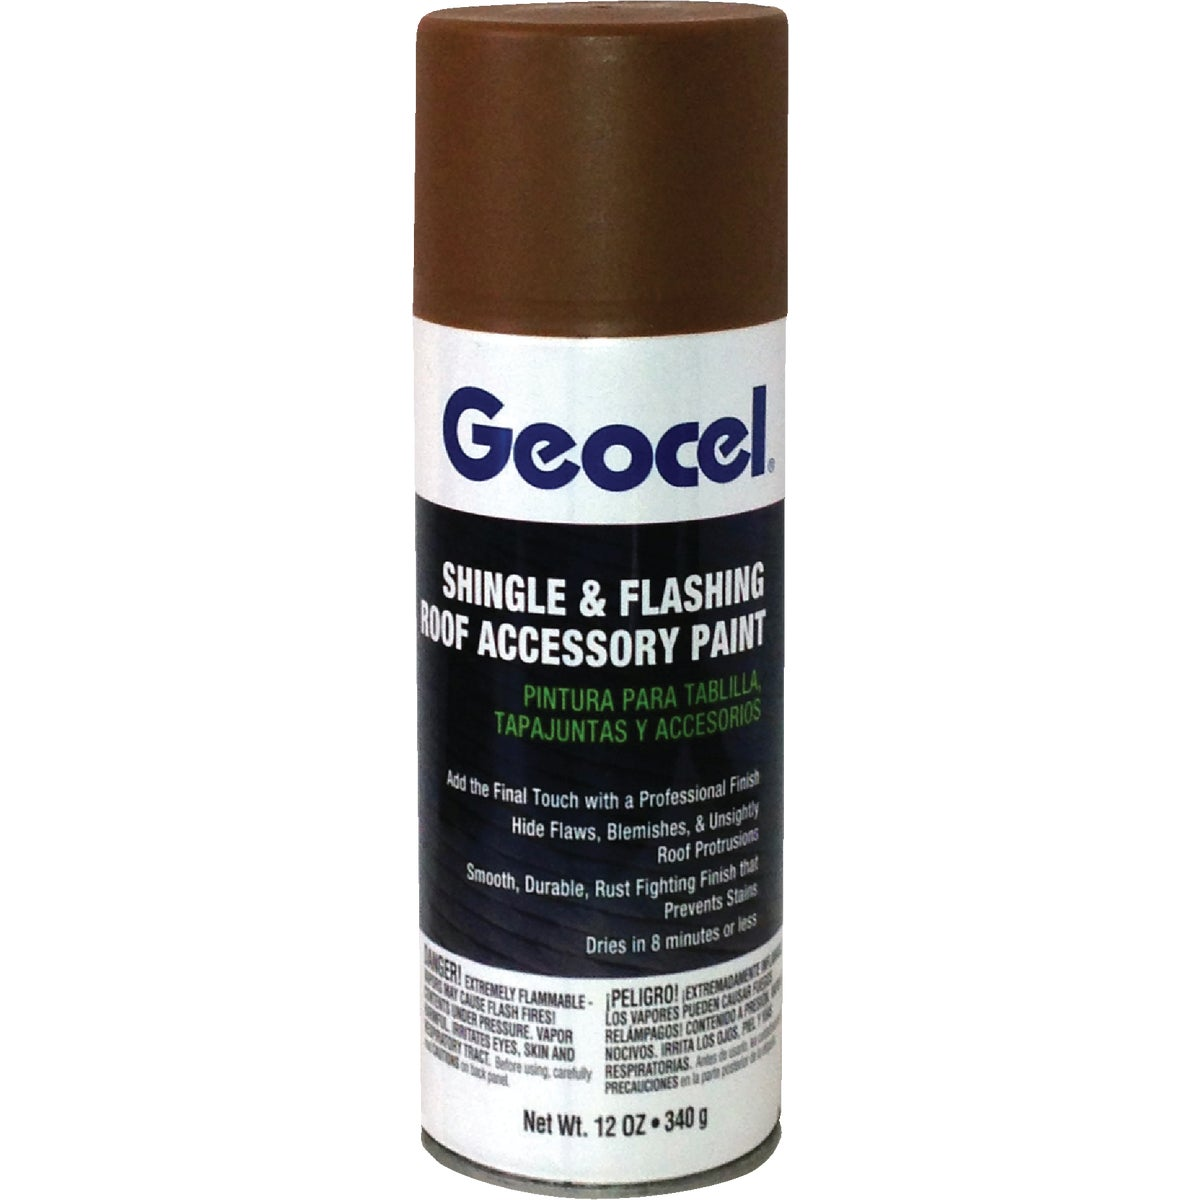 HICKORY ROOF PAINT - GC91151 by Geocel Llc